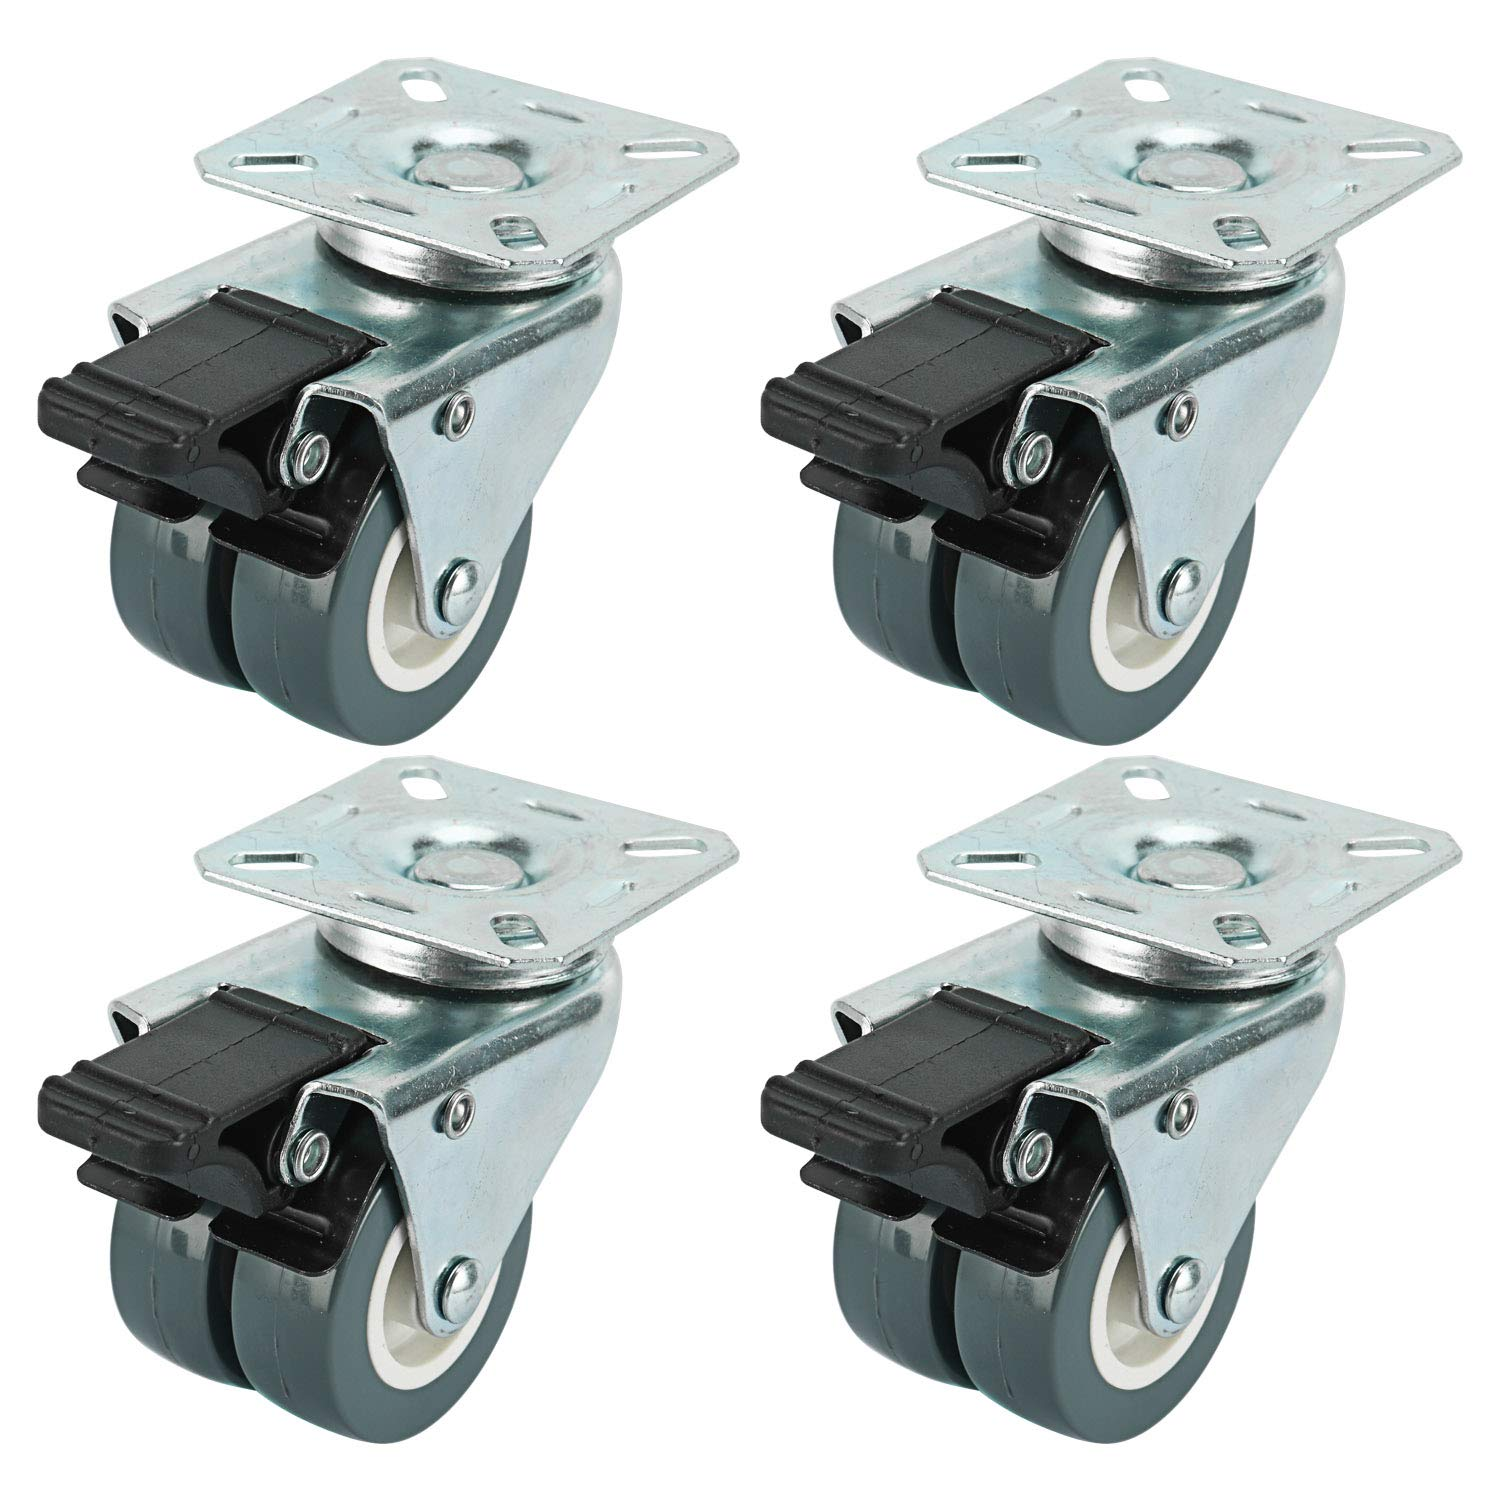 """Homend 2"""" TPR Dual Wheel Heavy Duty Swivel Plate Locking Casters 551 LBs, 4 Pack (4 with Brakes) -Silver Gray"""